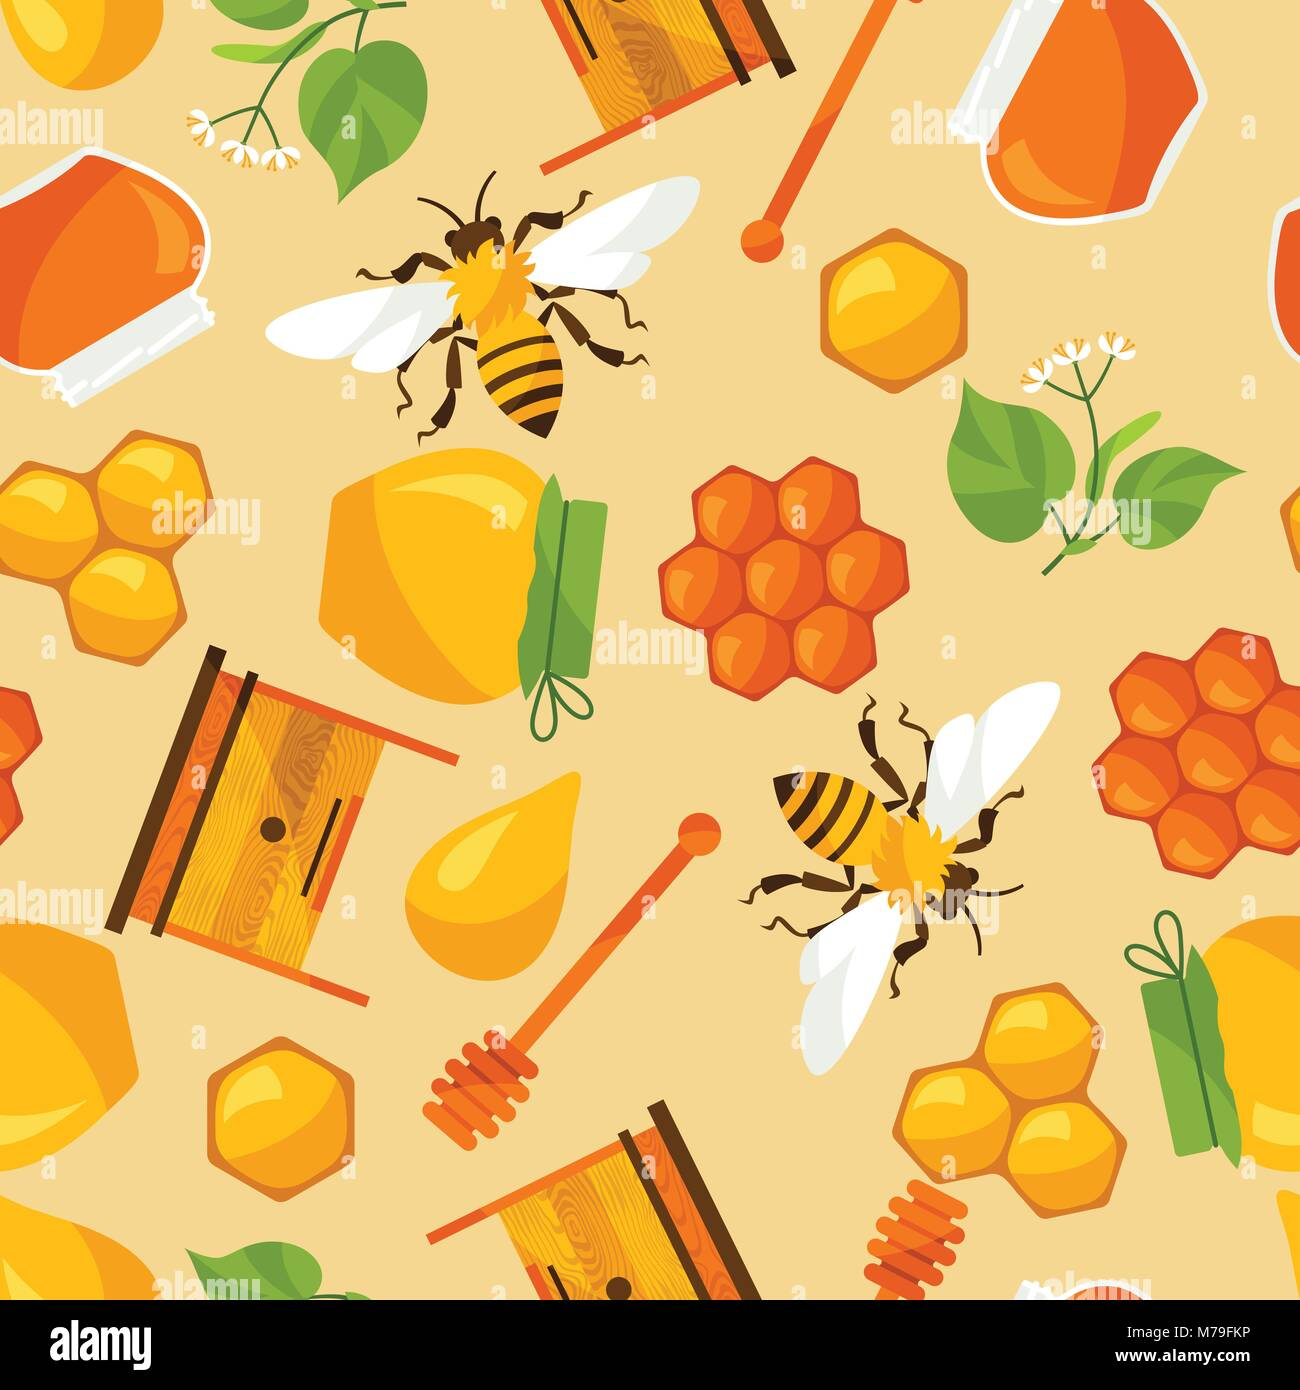 Seamless pattern with honey and bee objects - Stock Vector